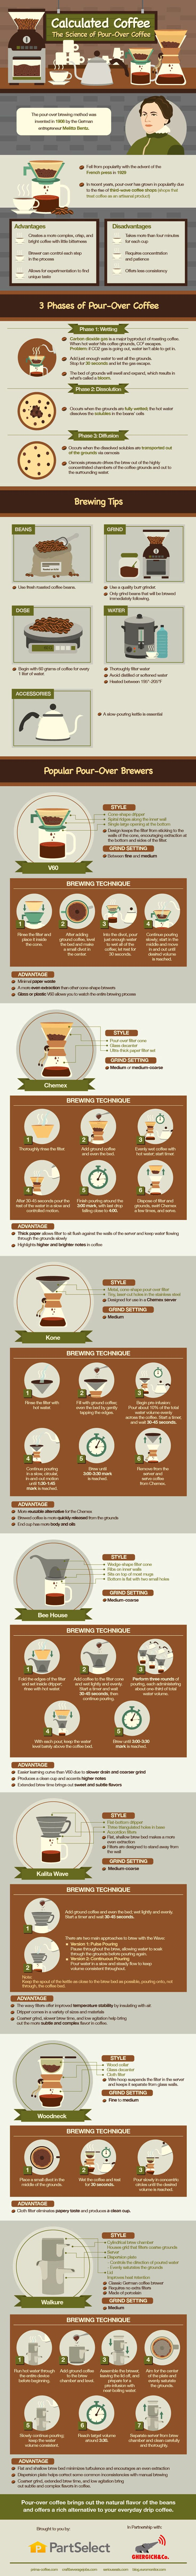 The Ultimate Guide to Pour Over Coffee Method. Topic: caffiene, hot beverage, work, French press, cappuccino, latte, starbucks, frappuccino, autodrip, ground beans, manual brewing.